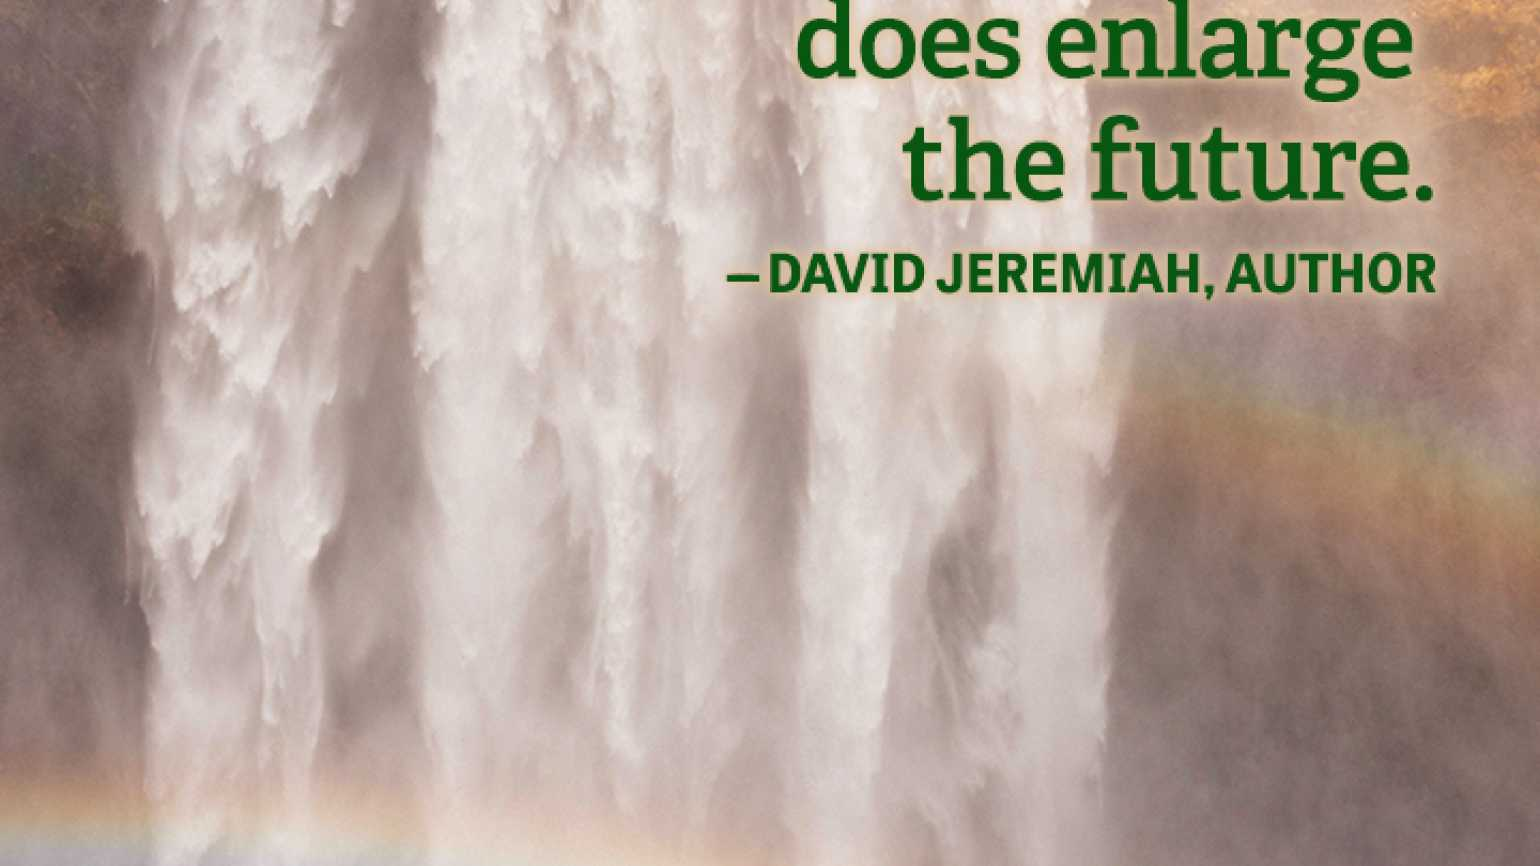 Forgiveness Quote David Jeremiah enlarge the future